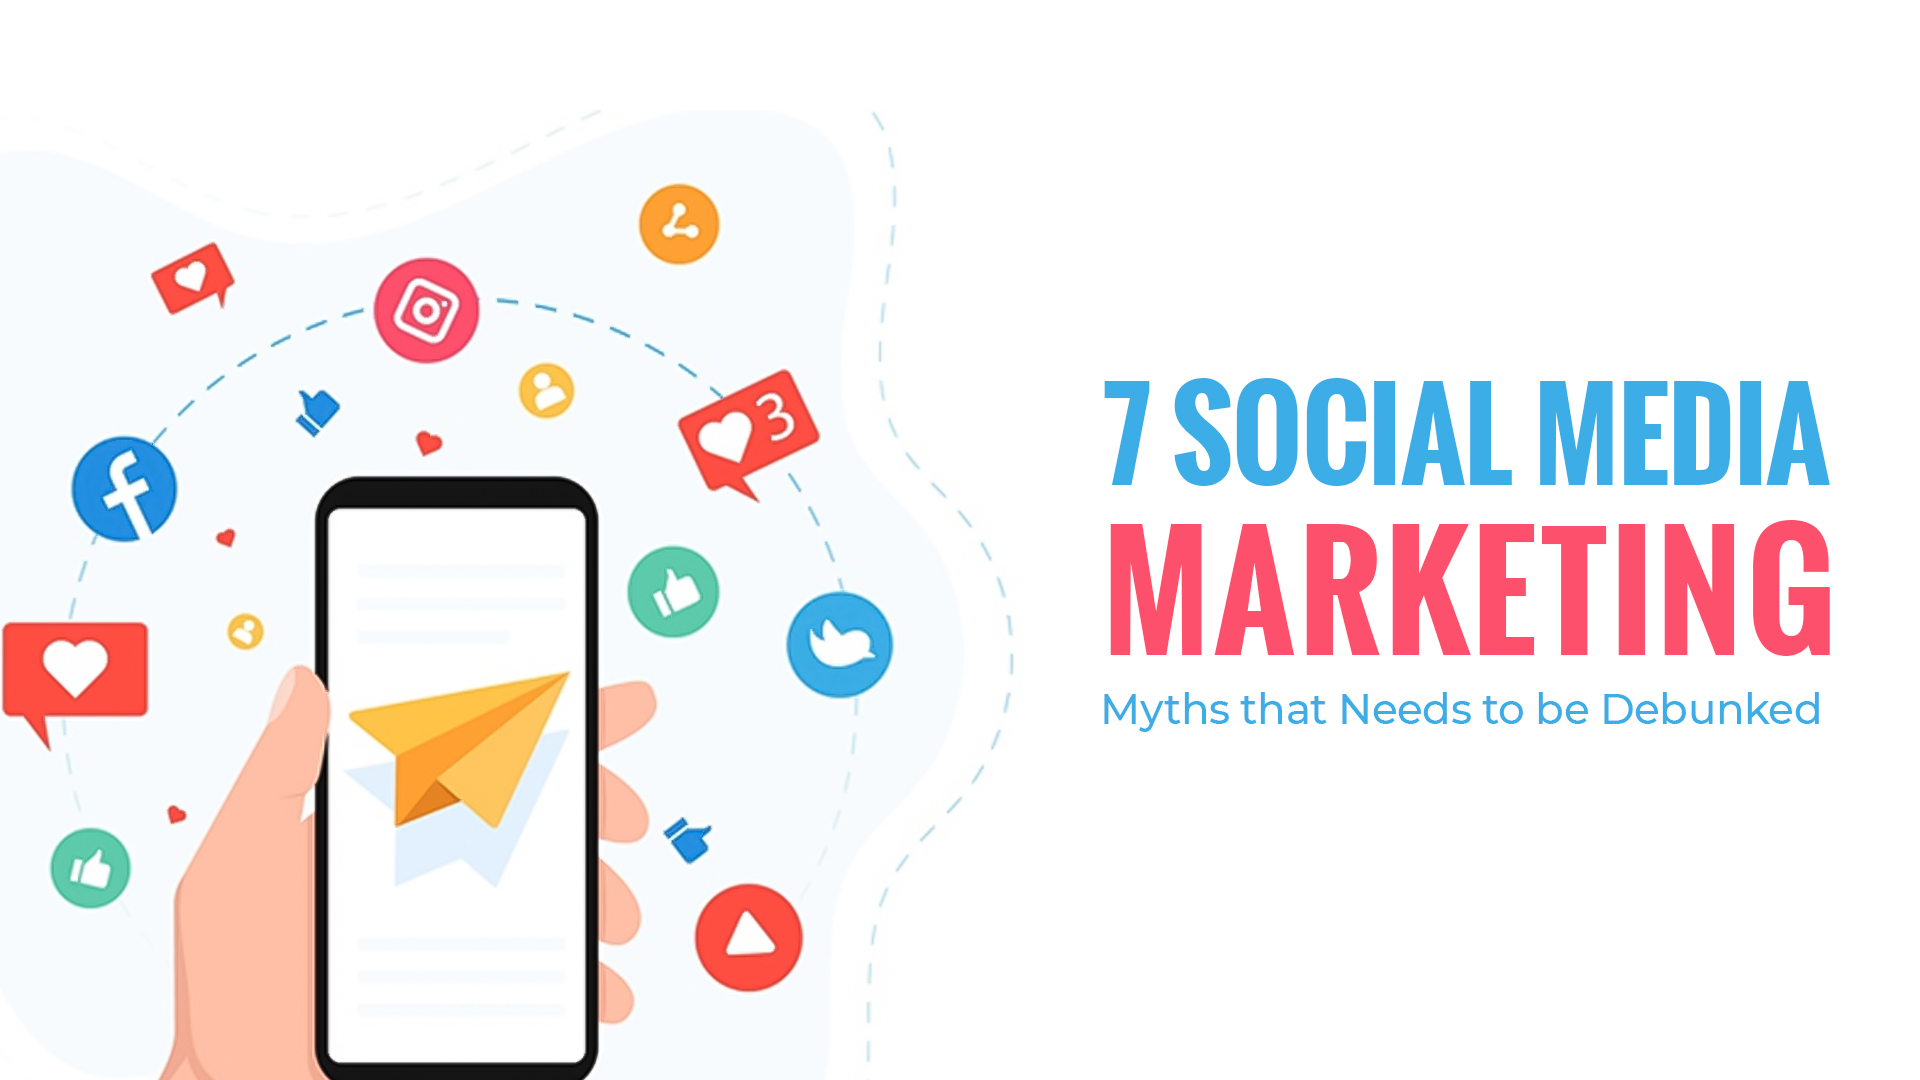 7 Social Media Marketing Myths that Needs to be Debunked